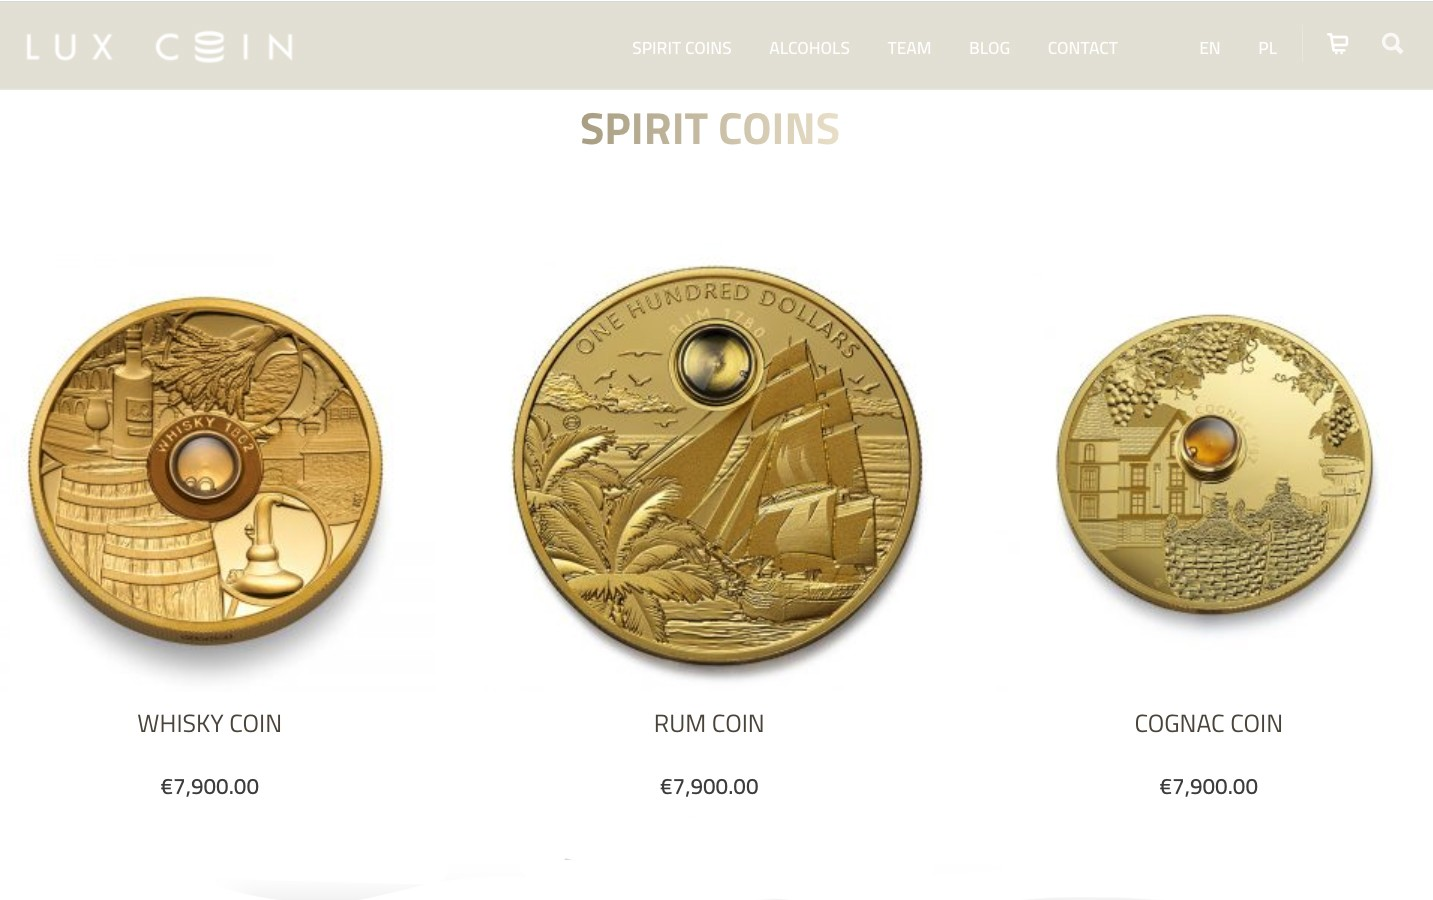 Lux Coin's Whisky Coin, Rum Coin, and the Cognac Coin.